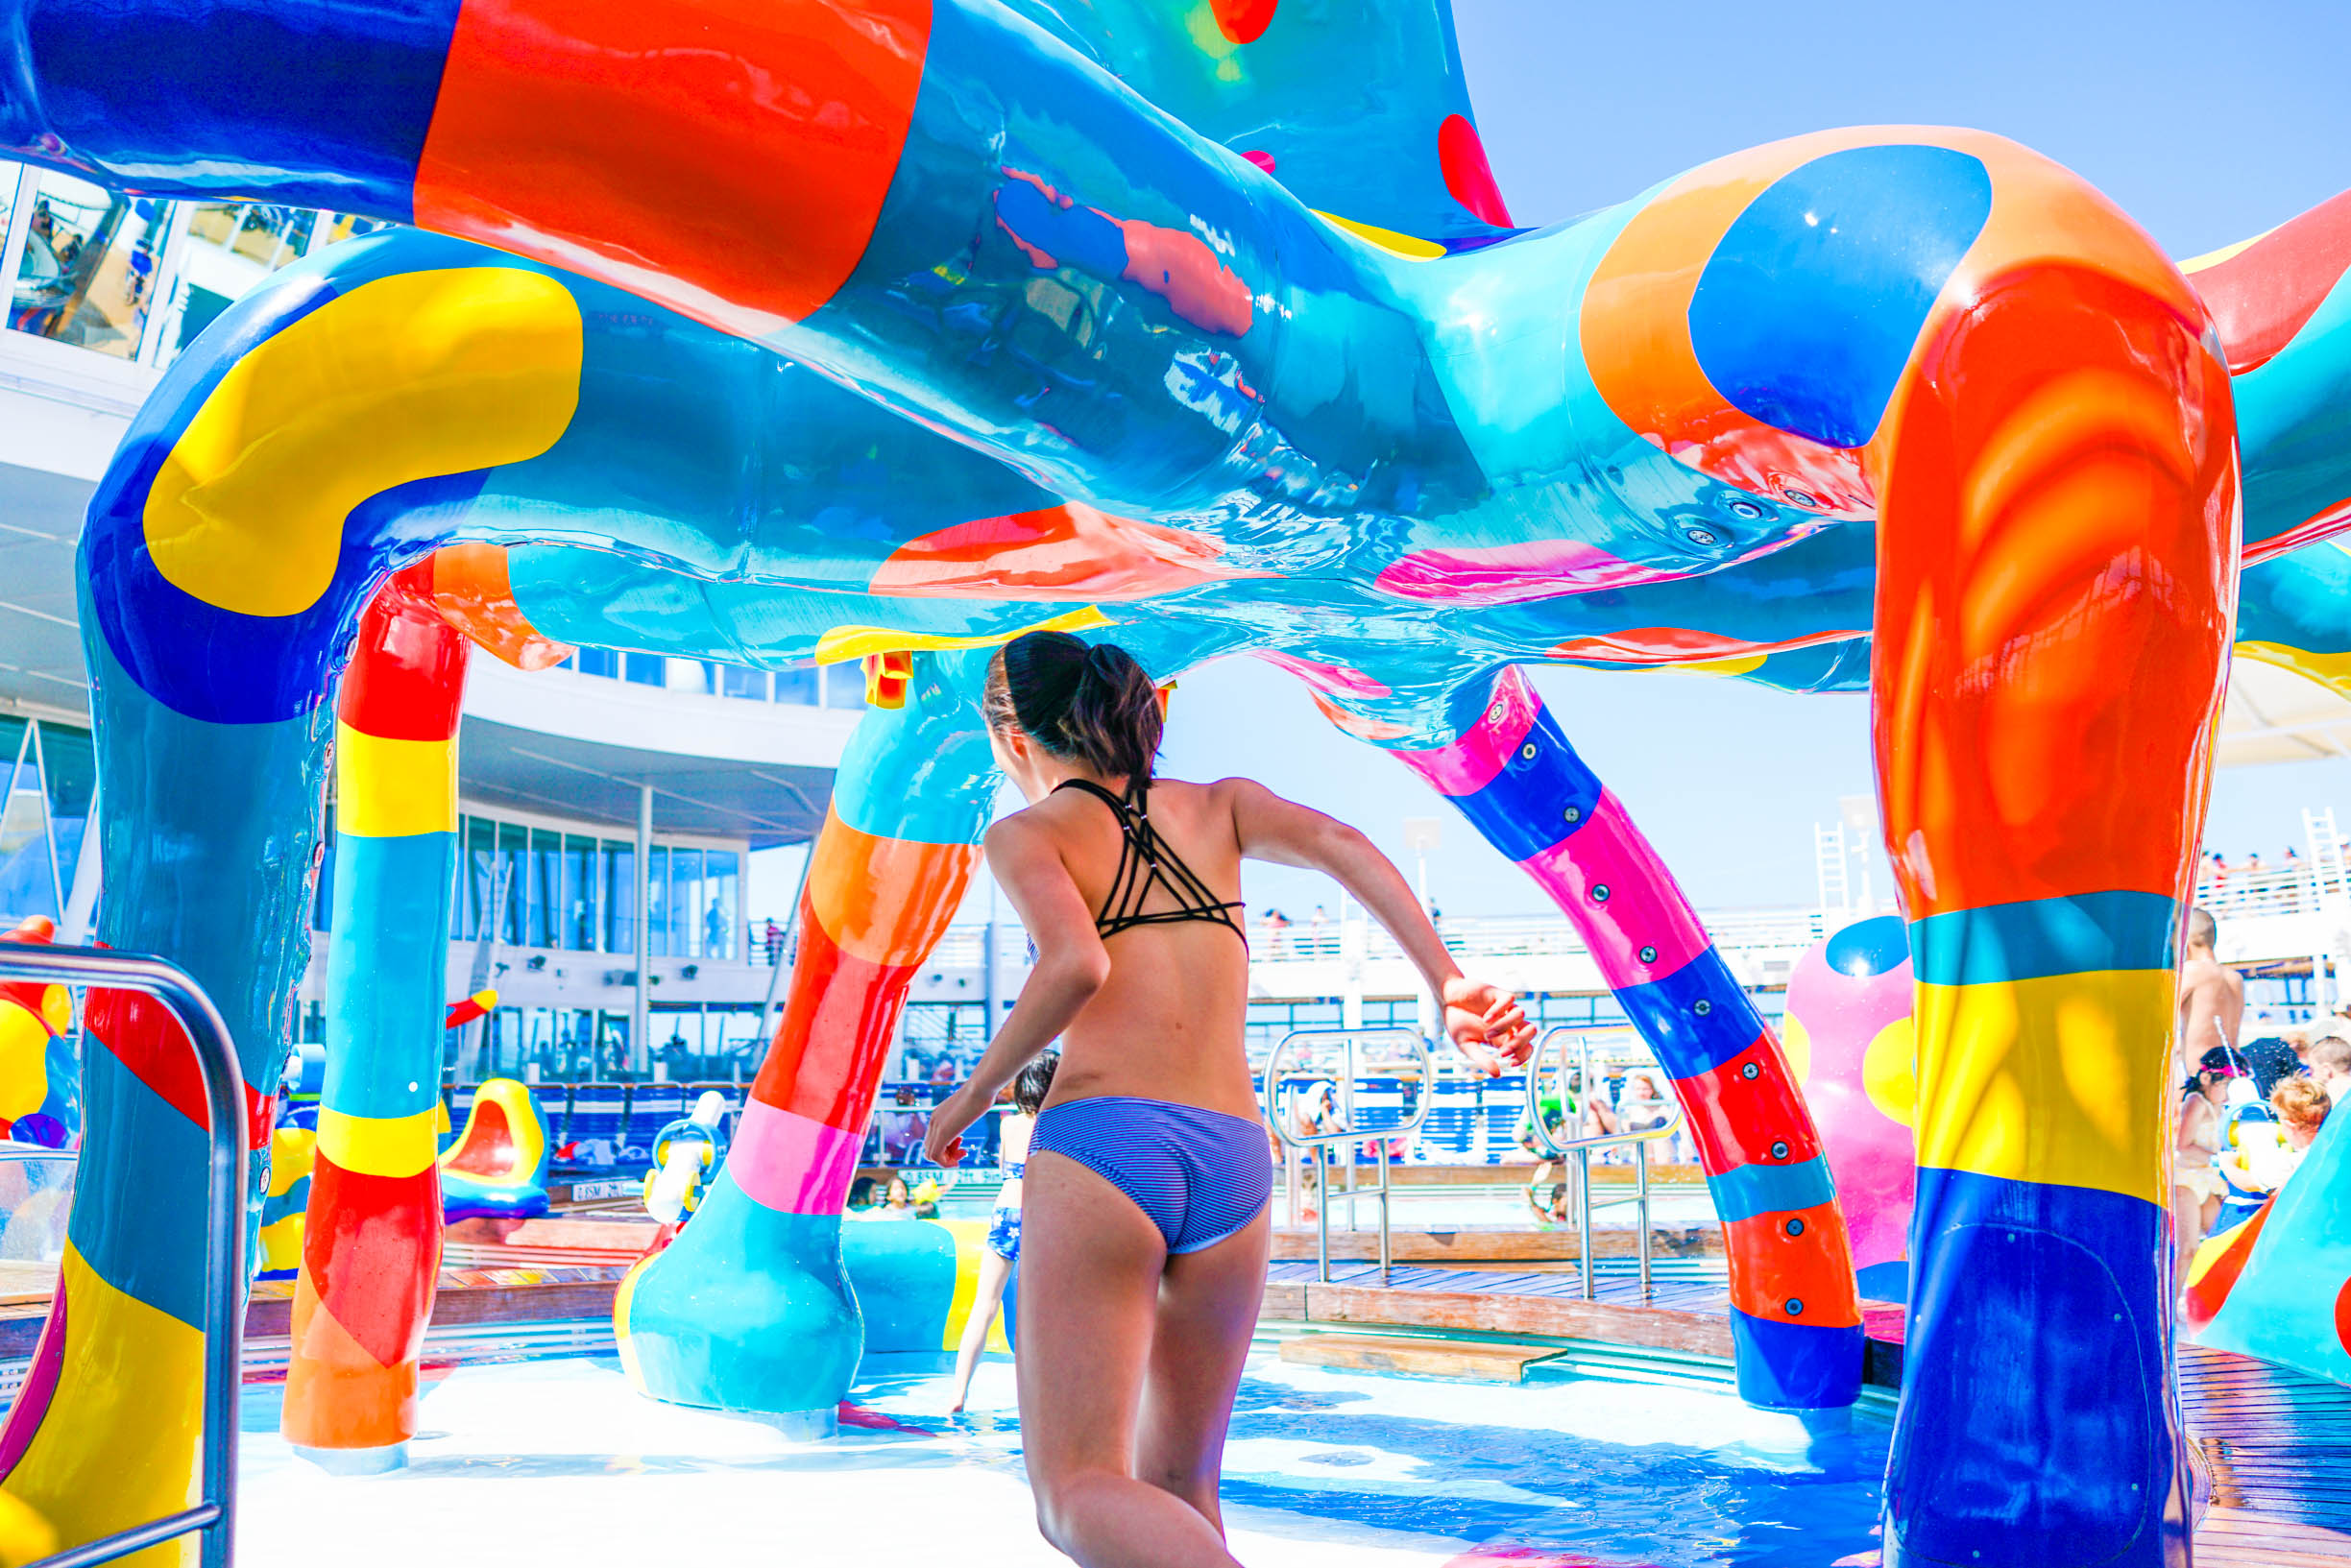 �'Ҽ��ձ����� Royal Caribbean Cruise ���������� Allure of the Seas ��ɼ�+�����ܼ��ձȺ�12���������� 2019��9��6�ձ������� �����ܵǴ� ���߱��:7719090611